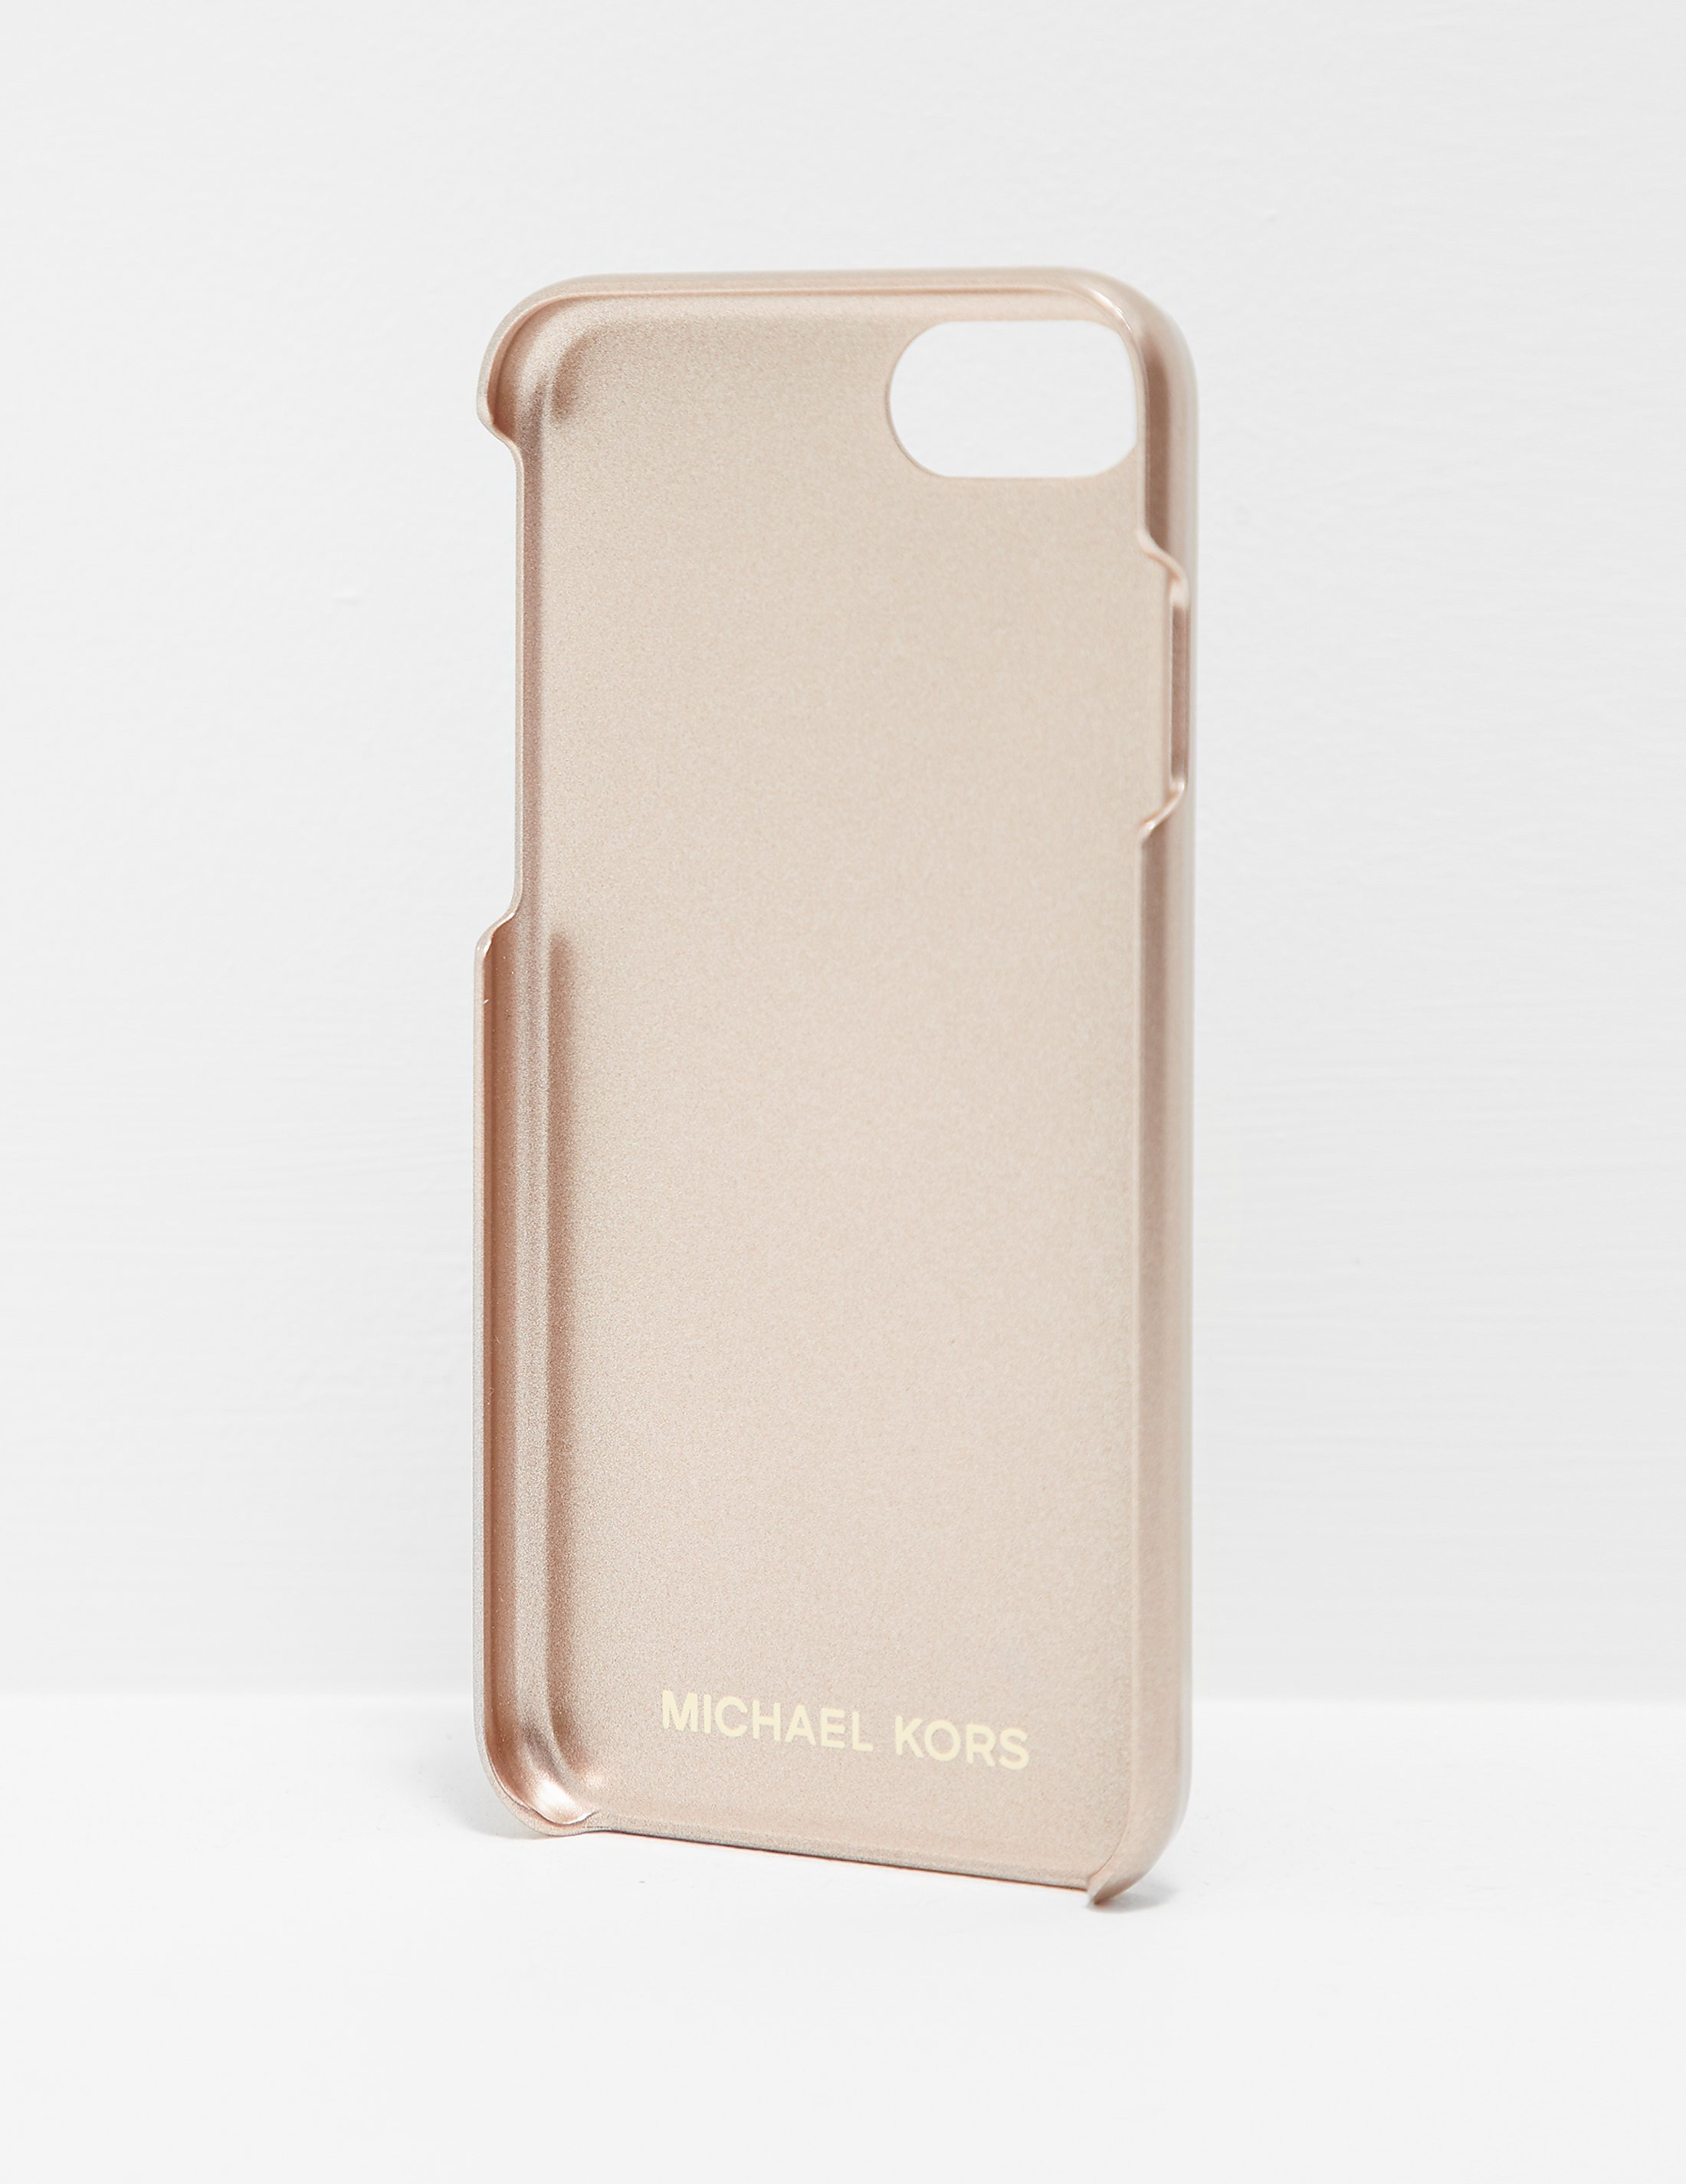 Michael Kors IPhone 7 Case